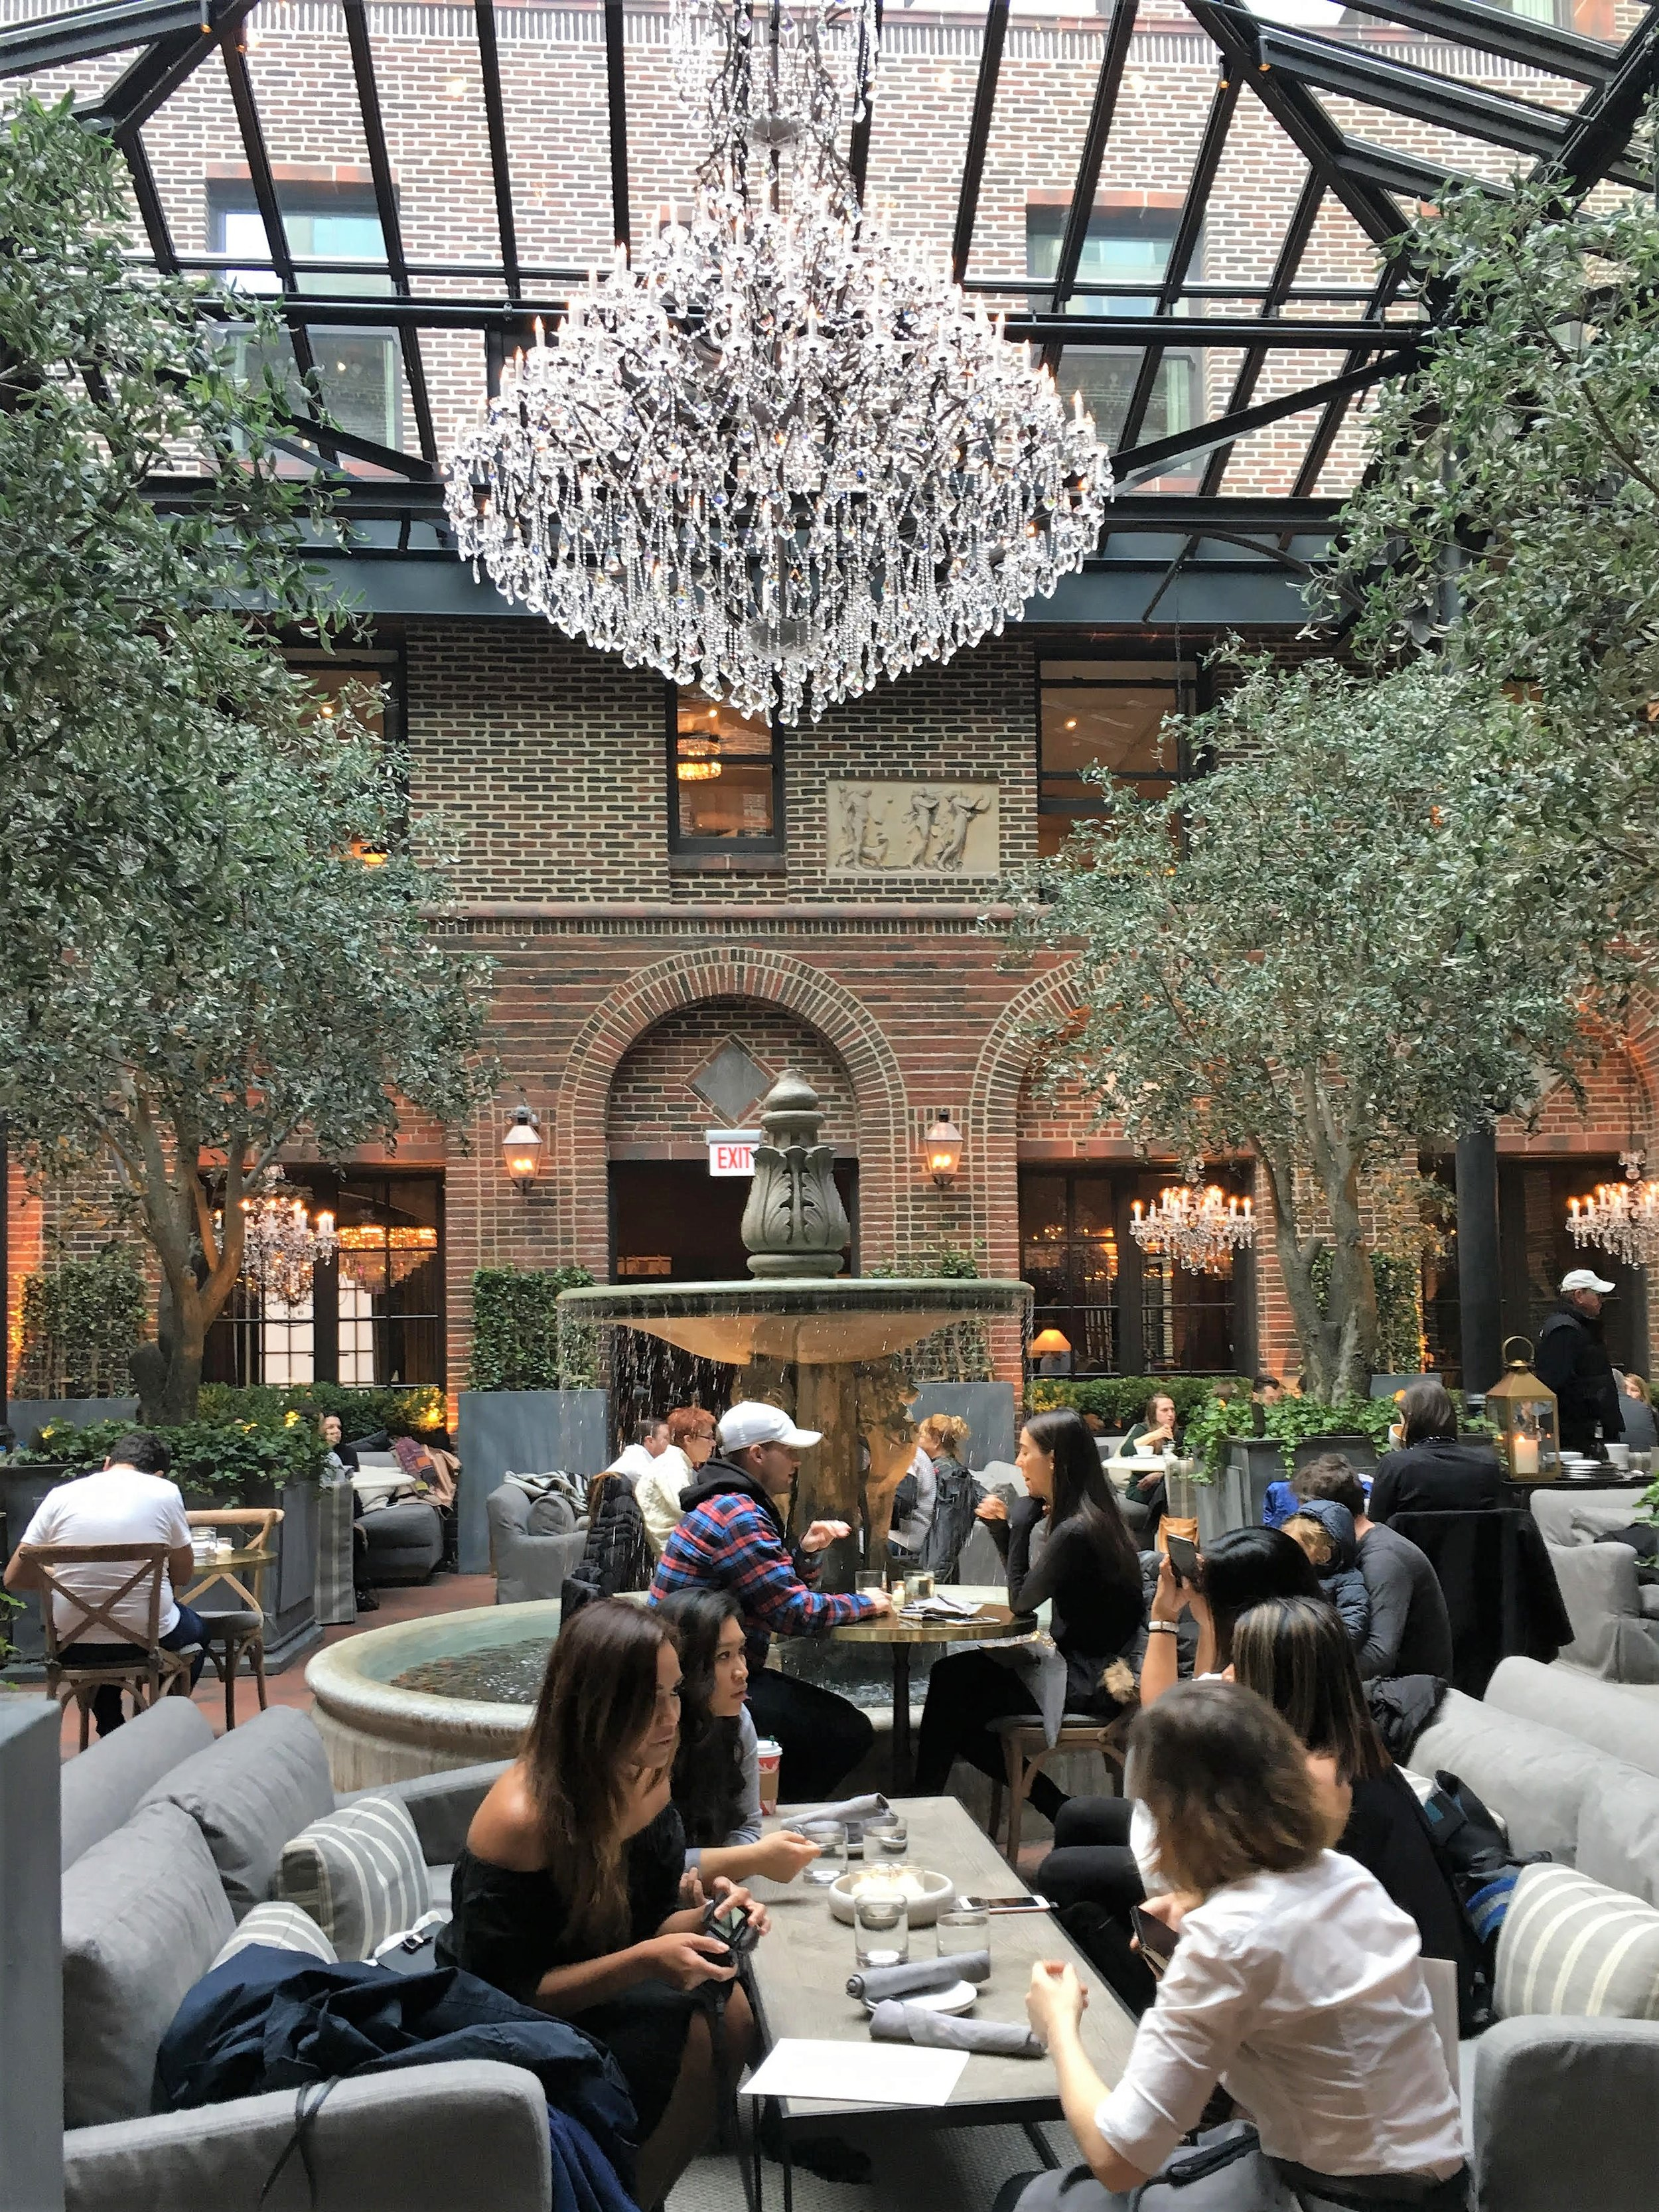 Wander through Restoration Hardware and peruse furniture with drink in hand or grab a seat under the beautiful skylight for a leisurely meal.